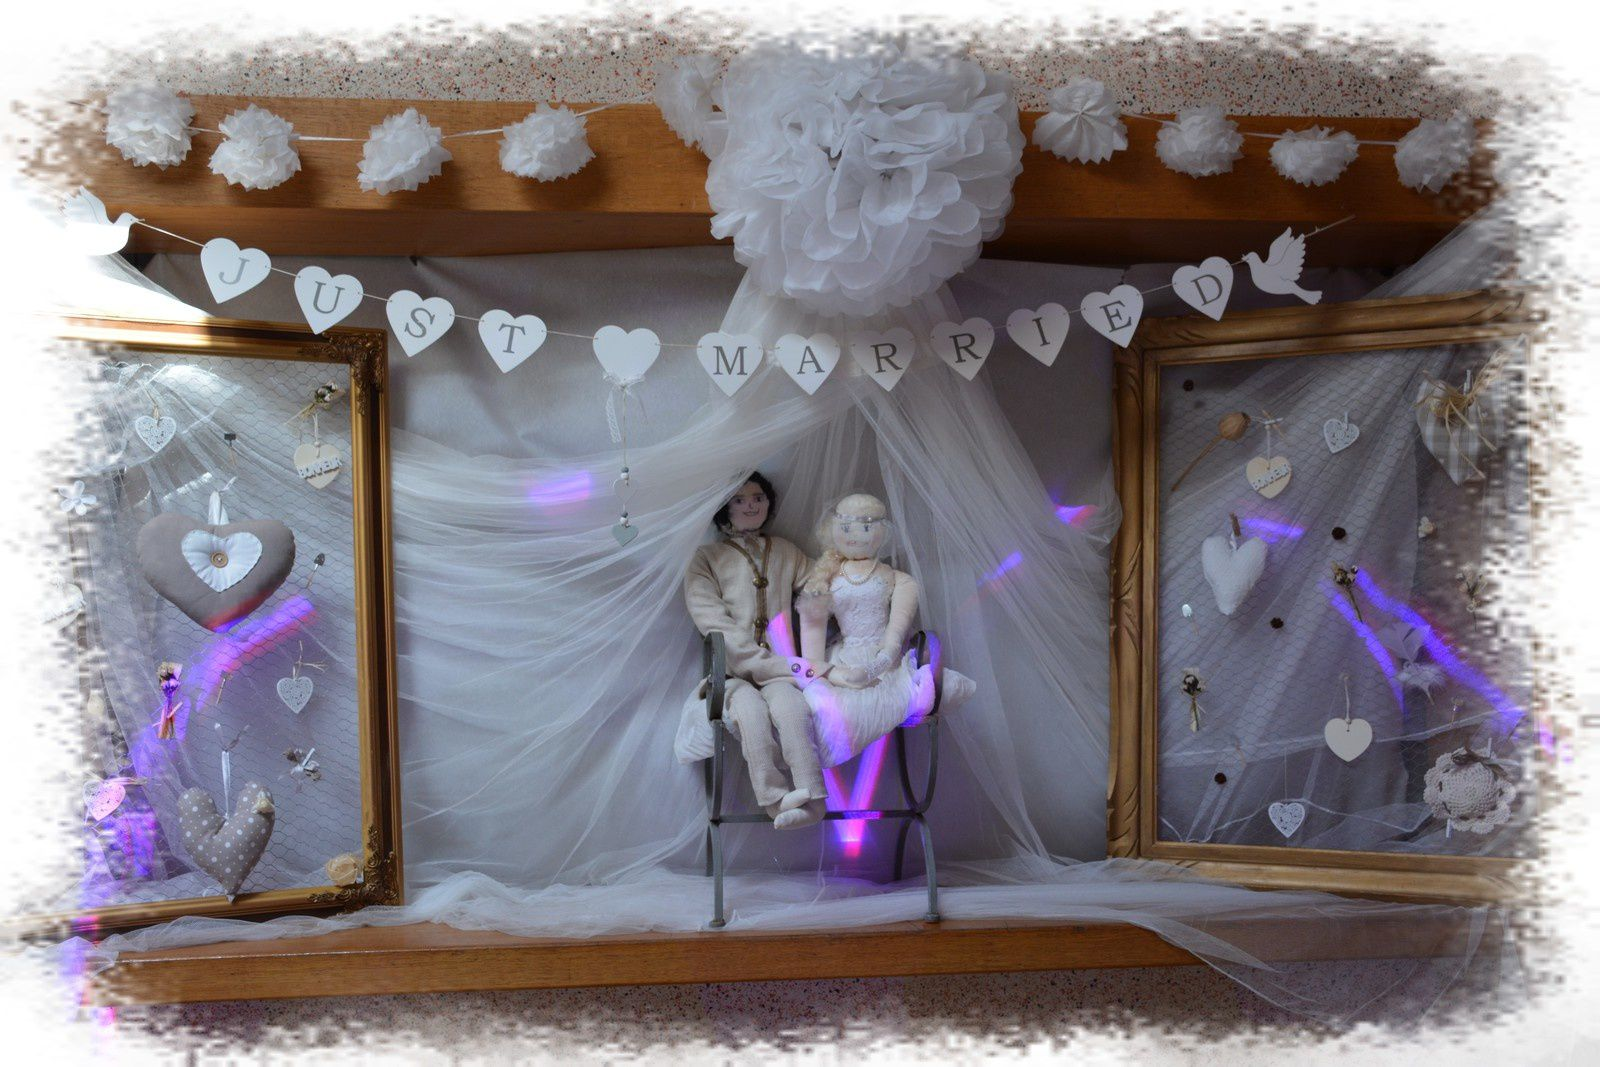 Mariage campagne chic - Mariage campagne chic ...